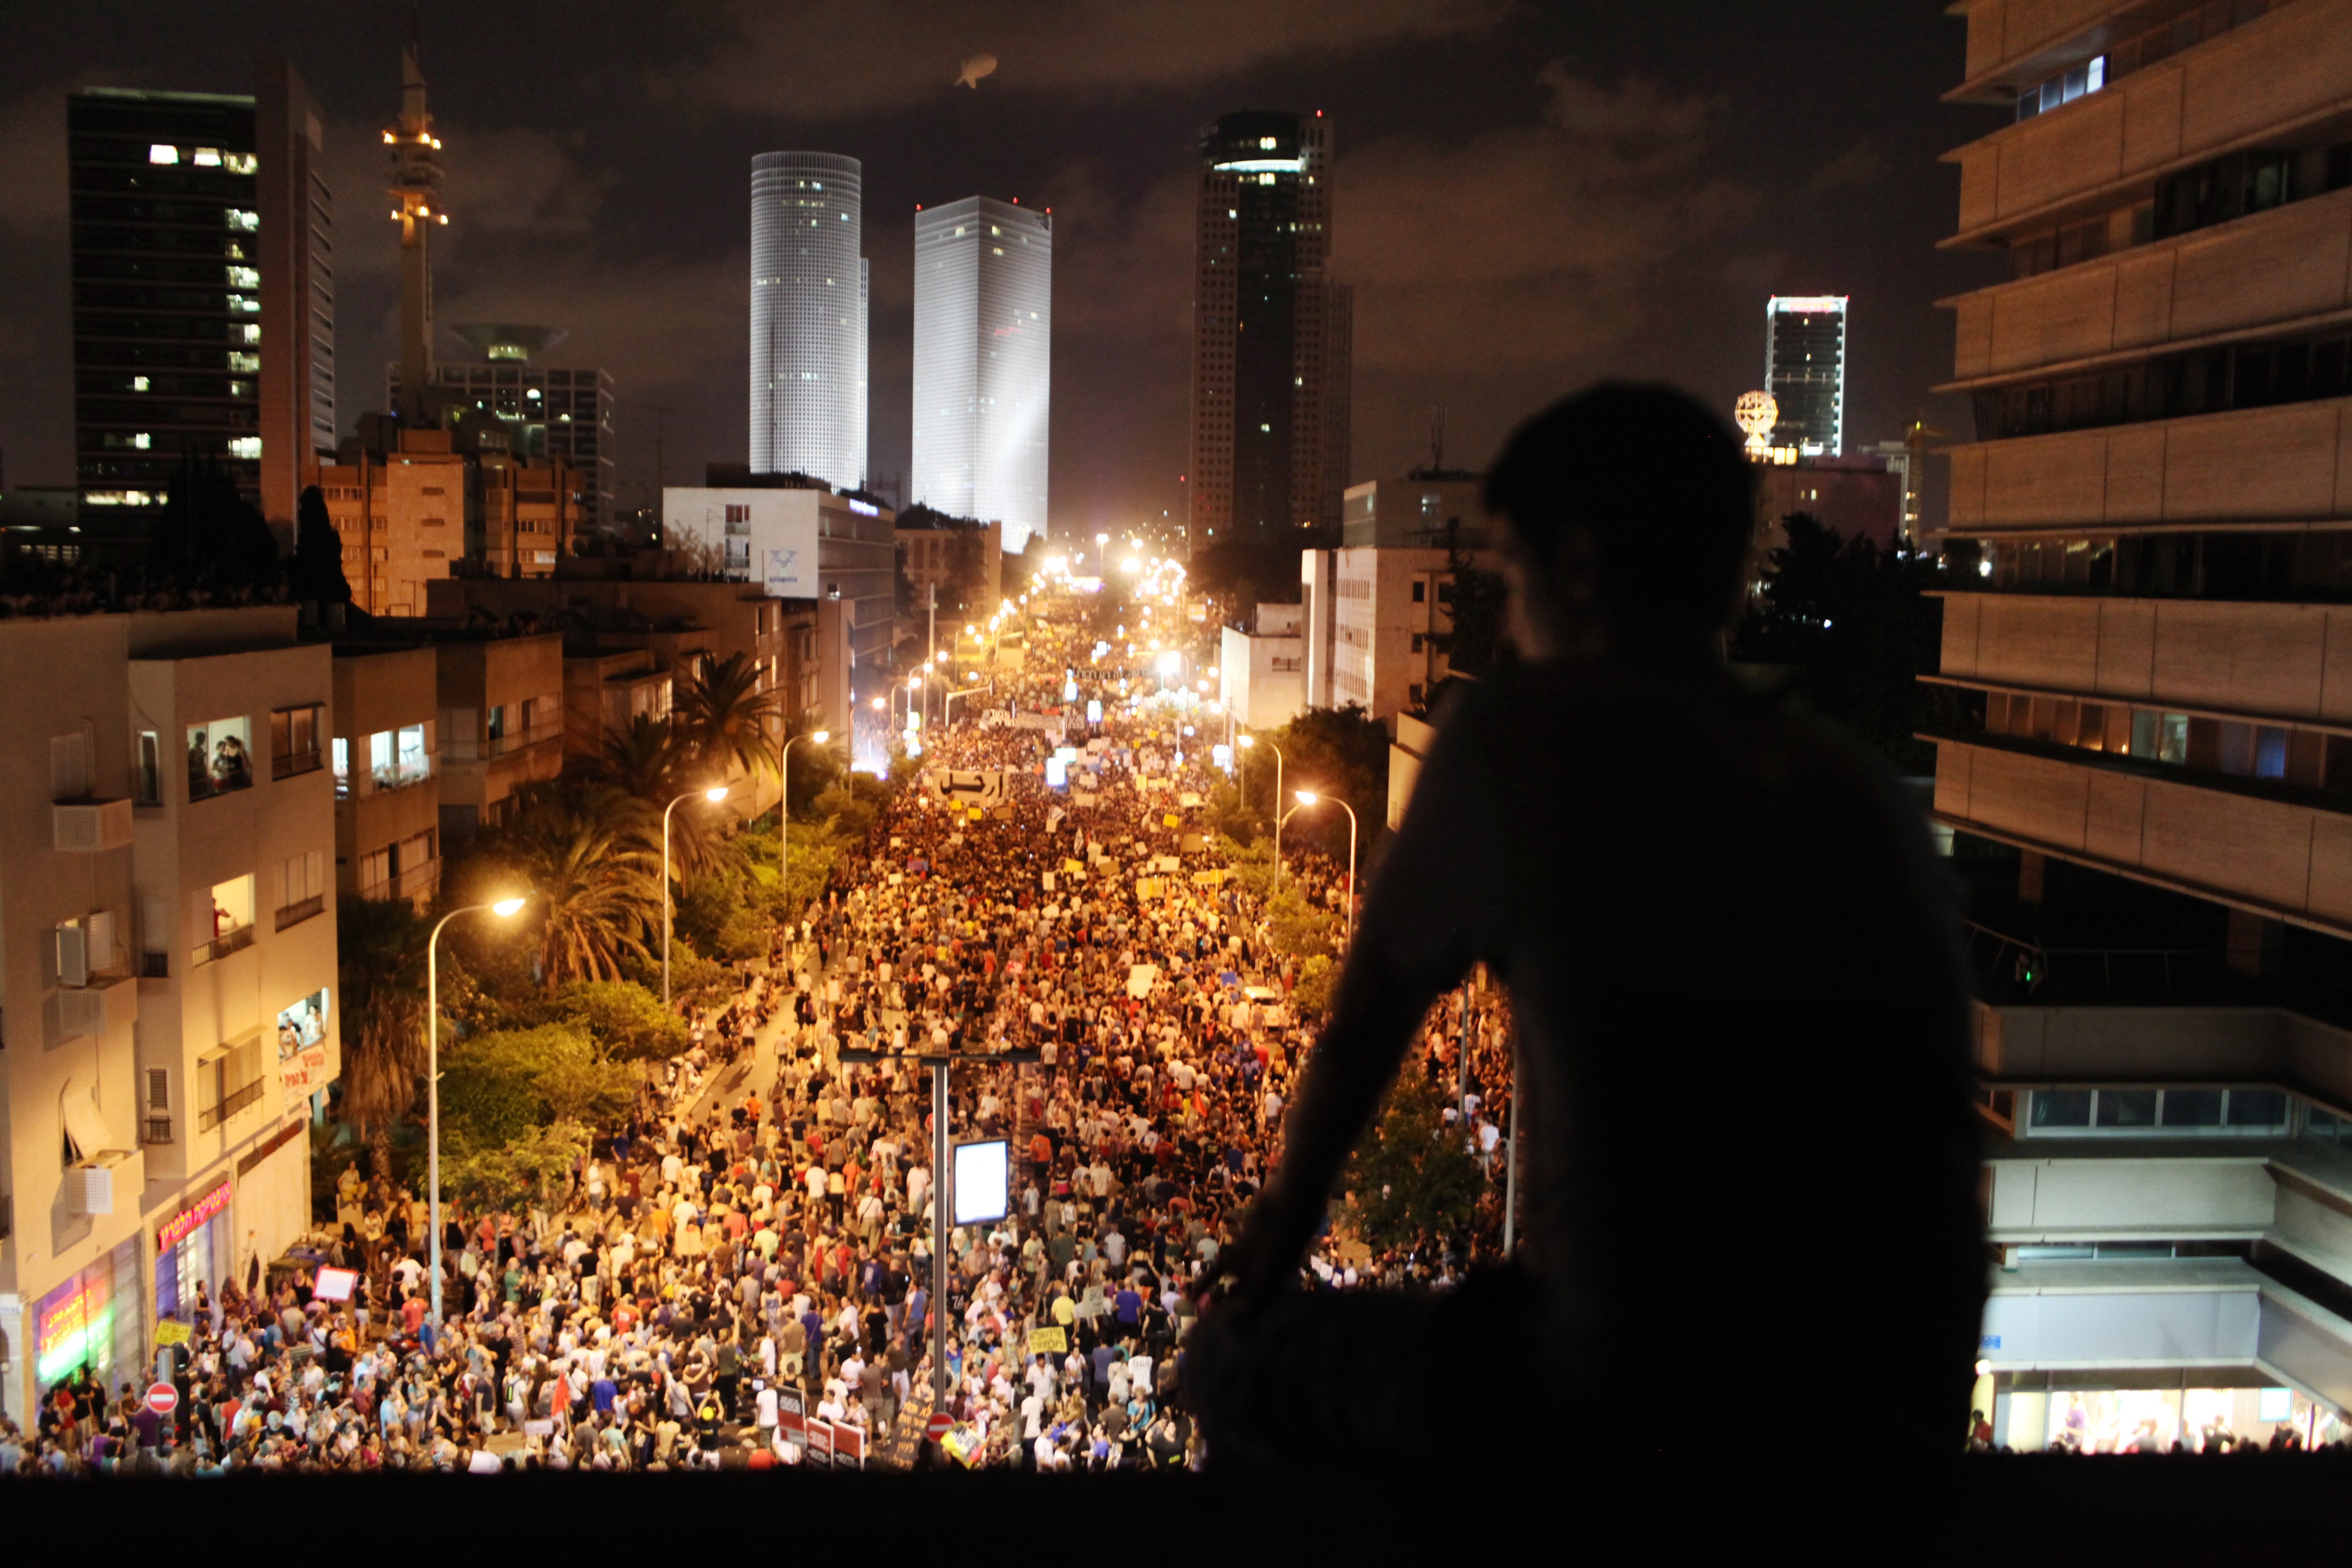 Man overlooking crowd on streets